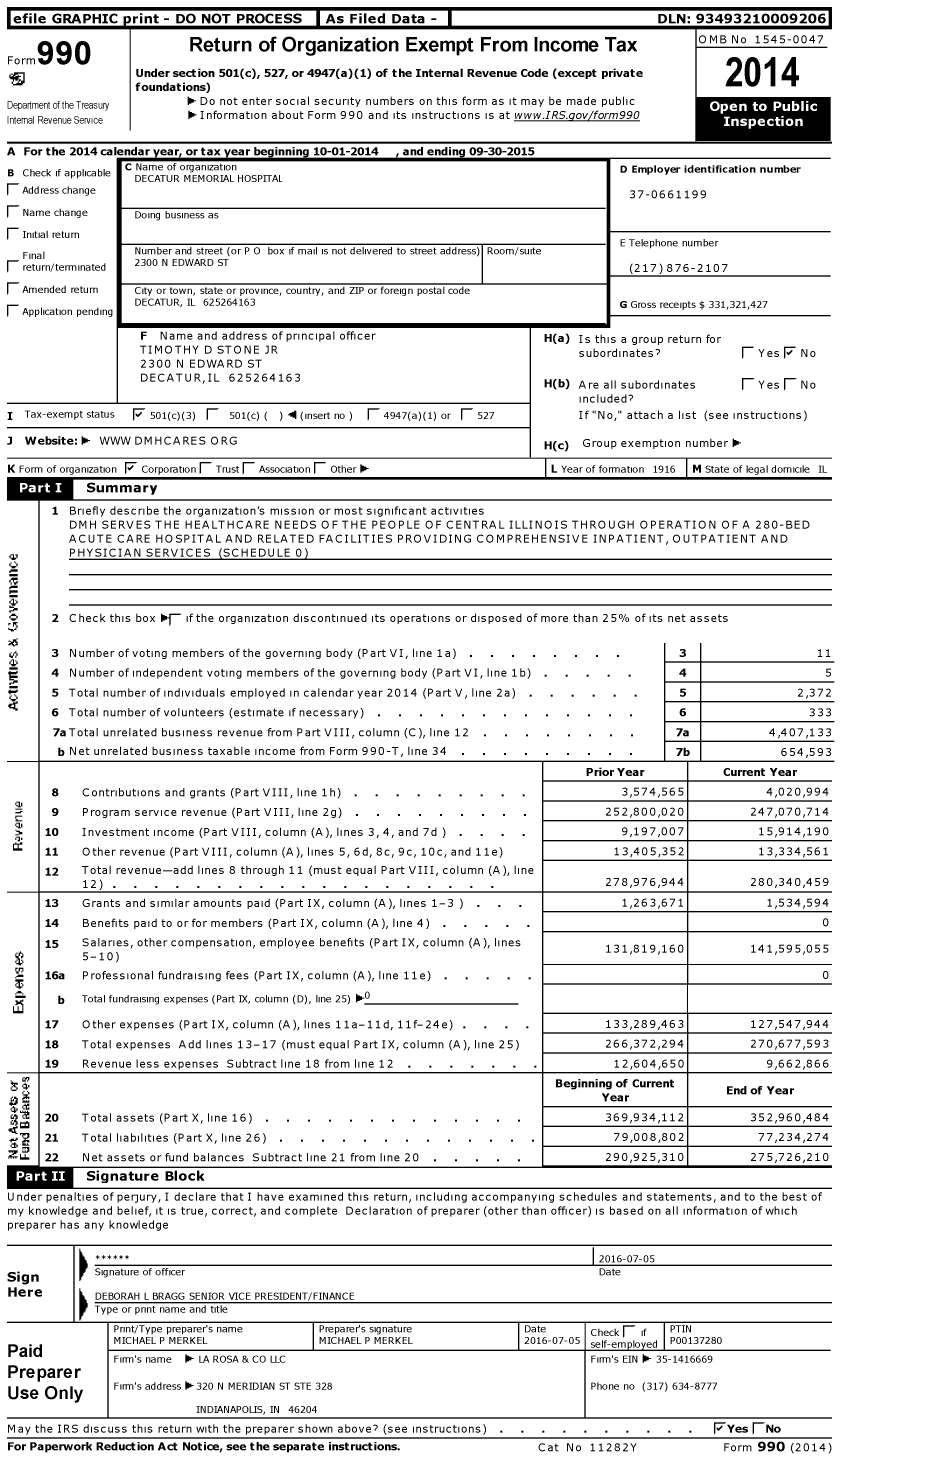 Image of first page of 2014 Form 990 for Decatur Memorial Hospital (DMH)